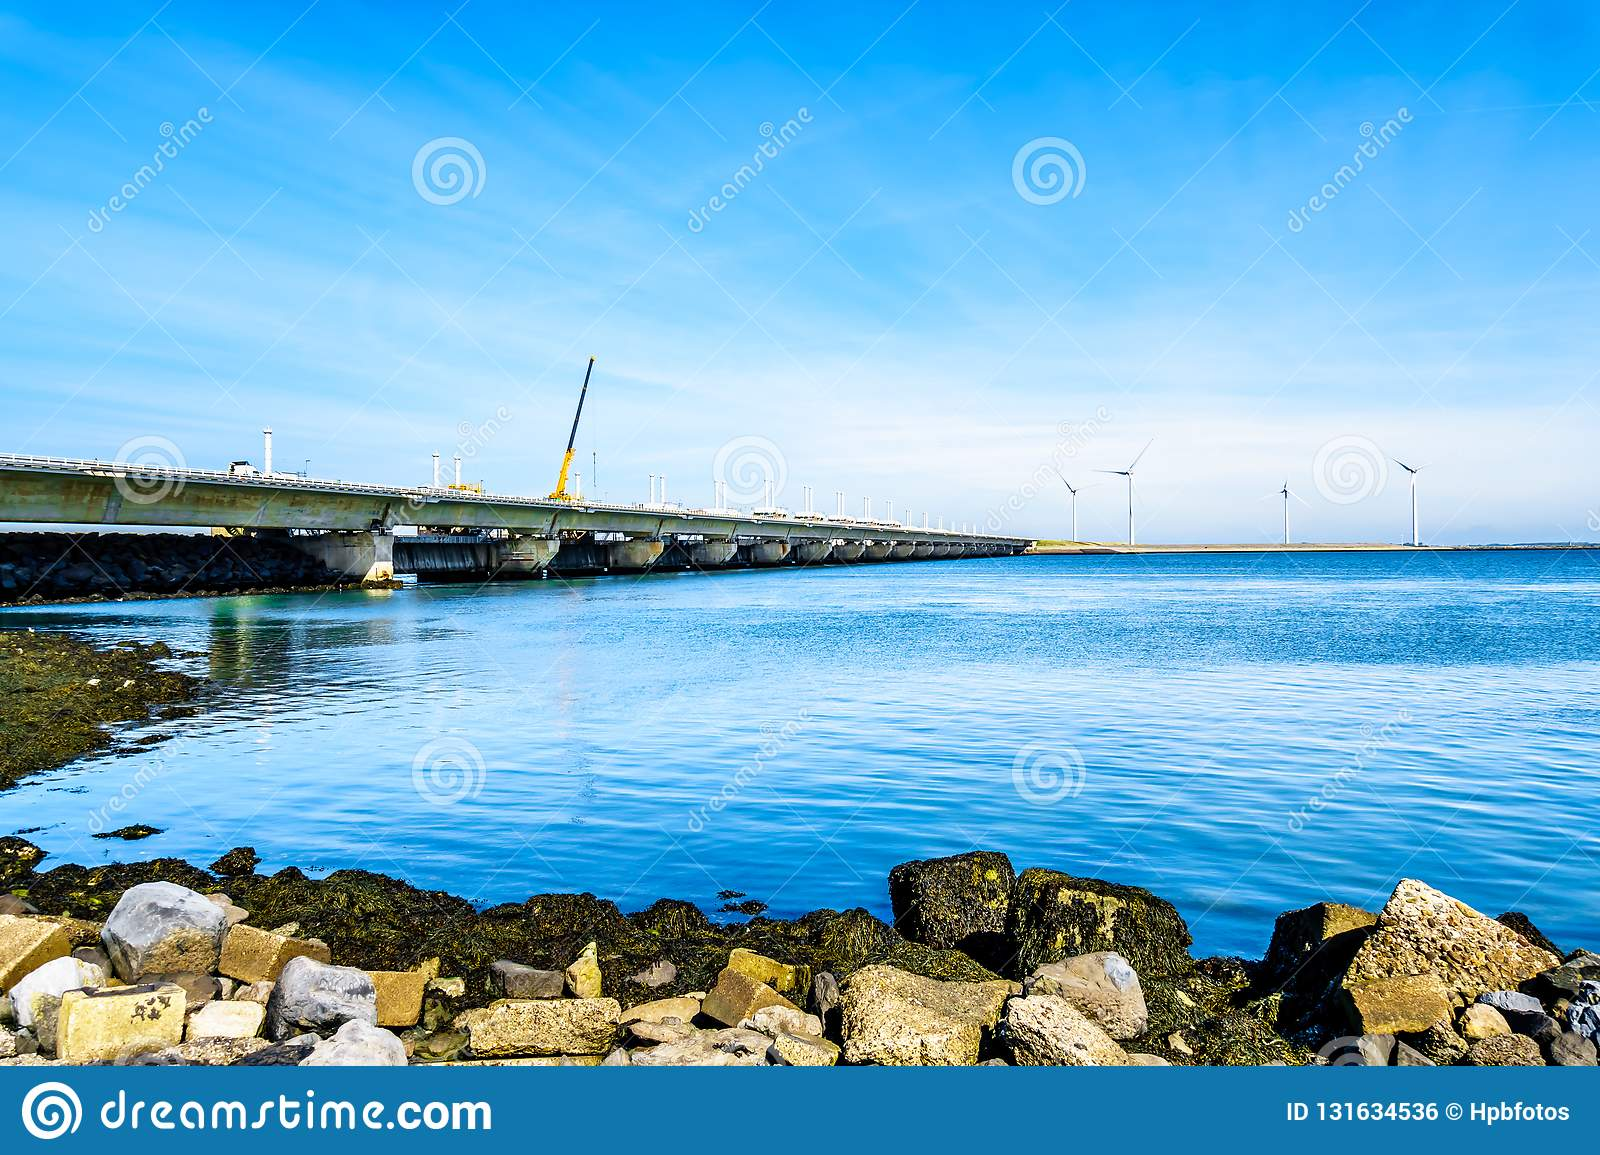 The Delta Works Storm Surge Barrier and Wind Turbines at the Oosterschelde viewed from Neeltje Jans island